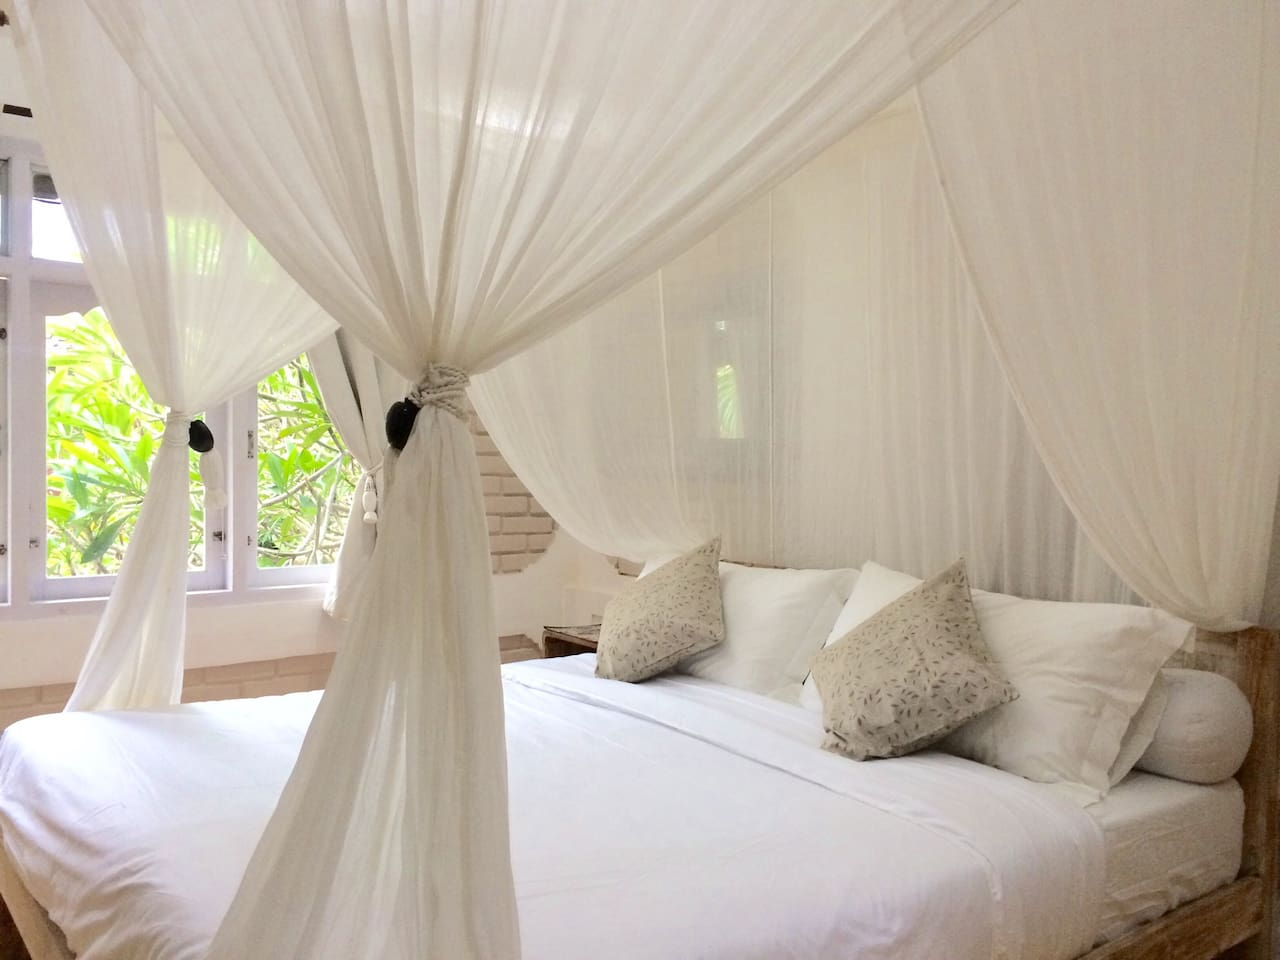 King Size Bed with quality linen and pillows